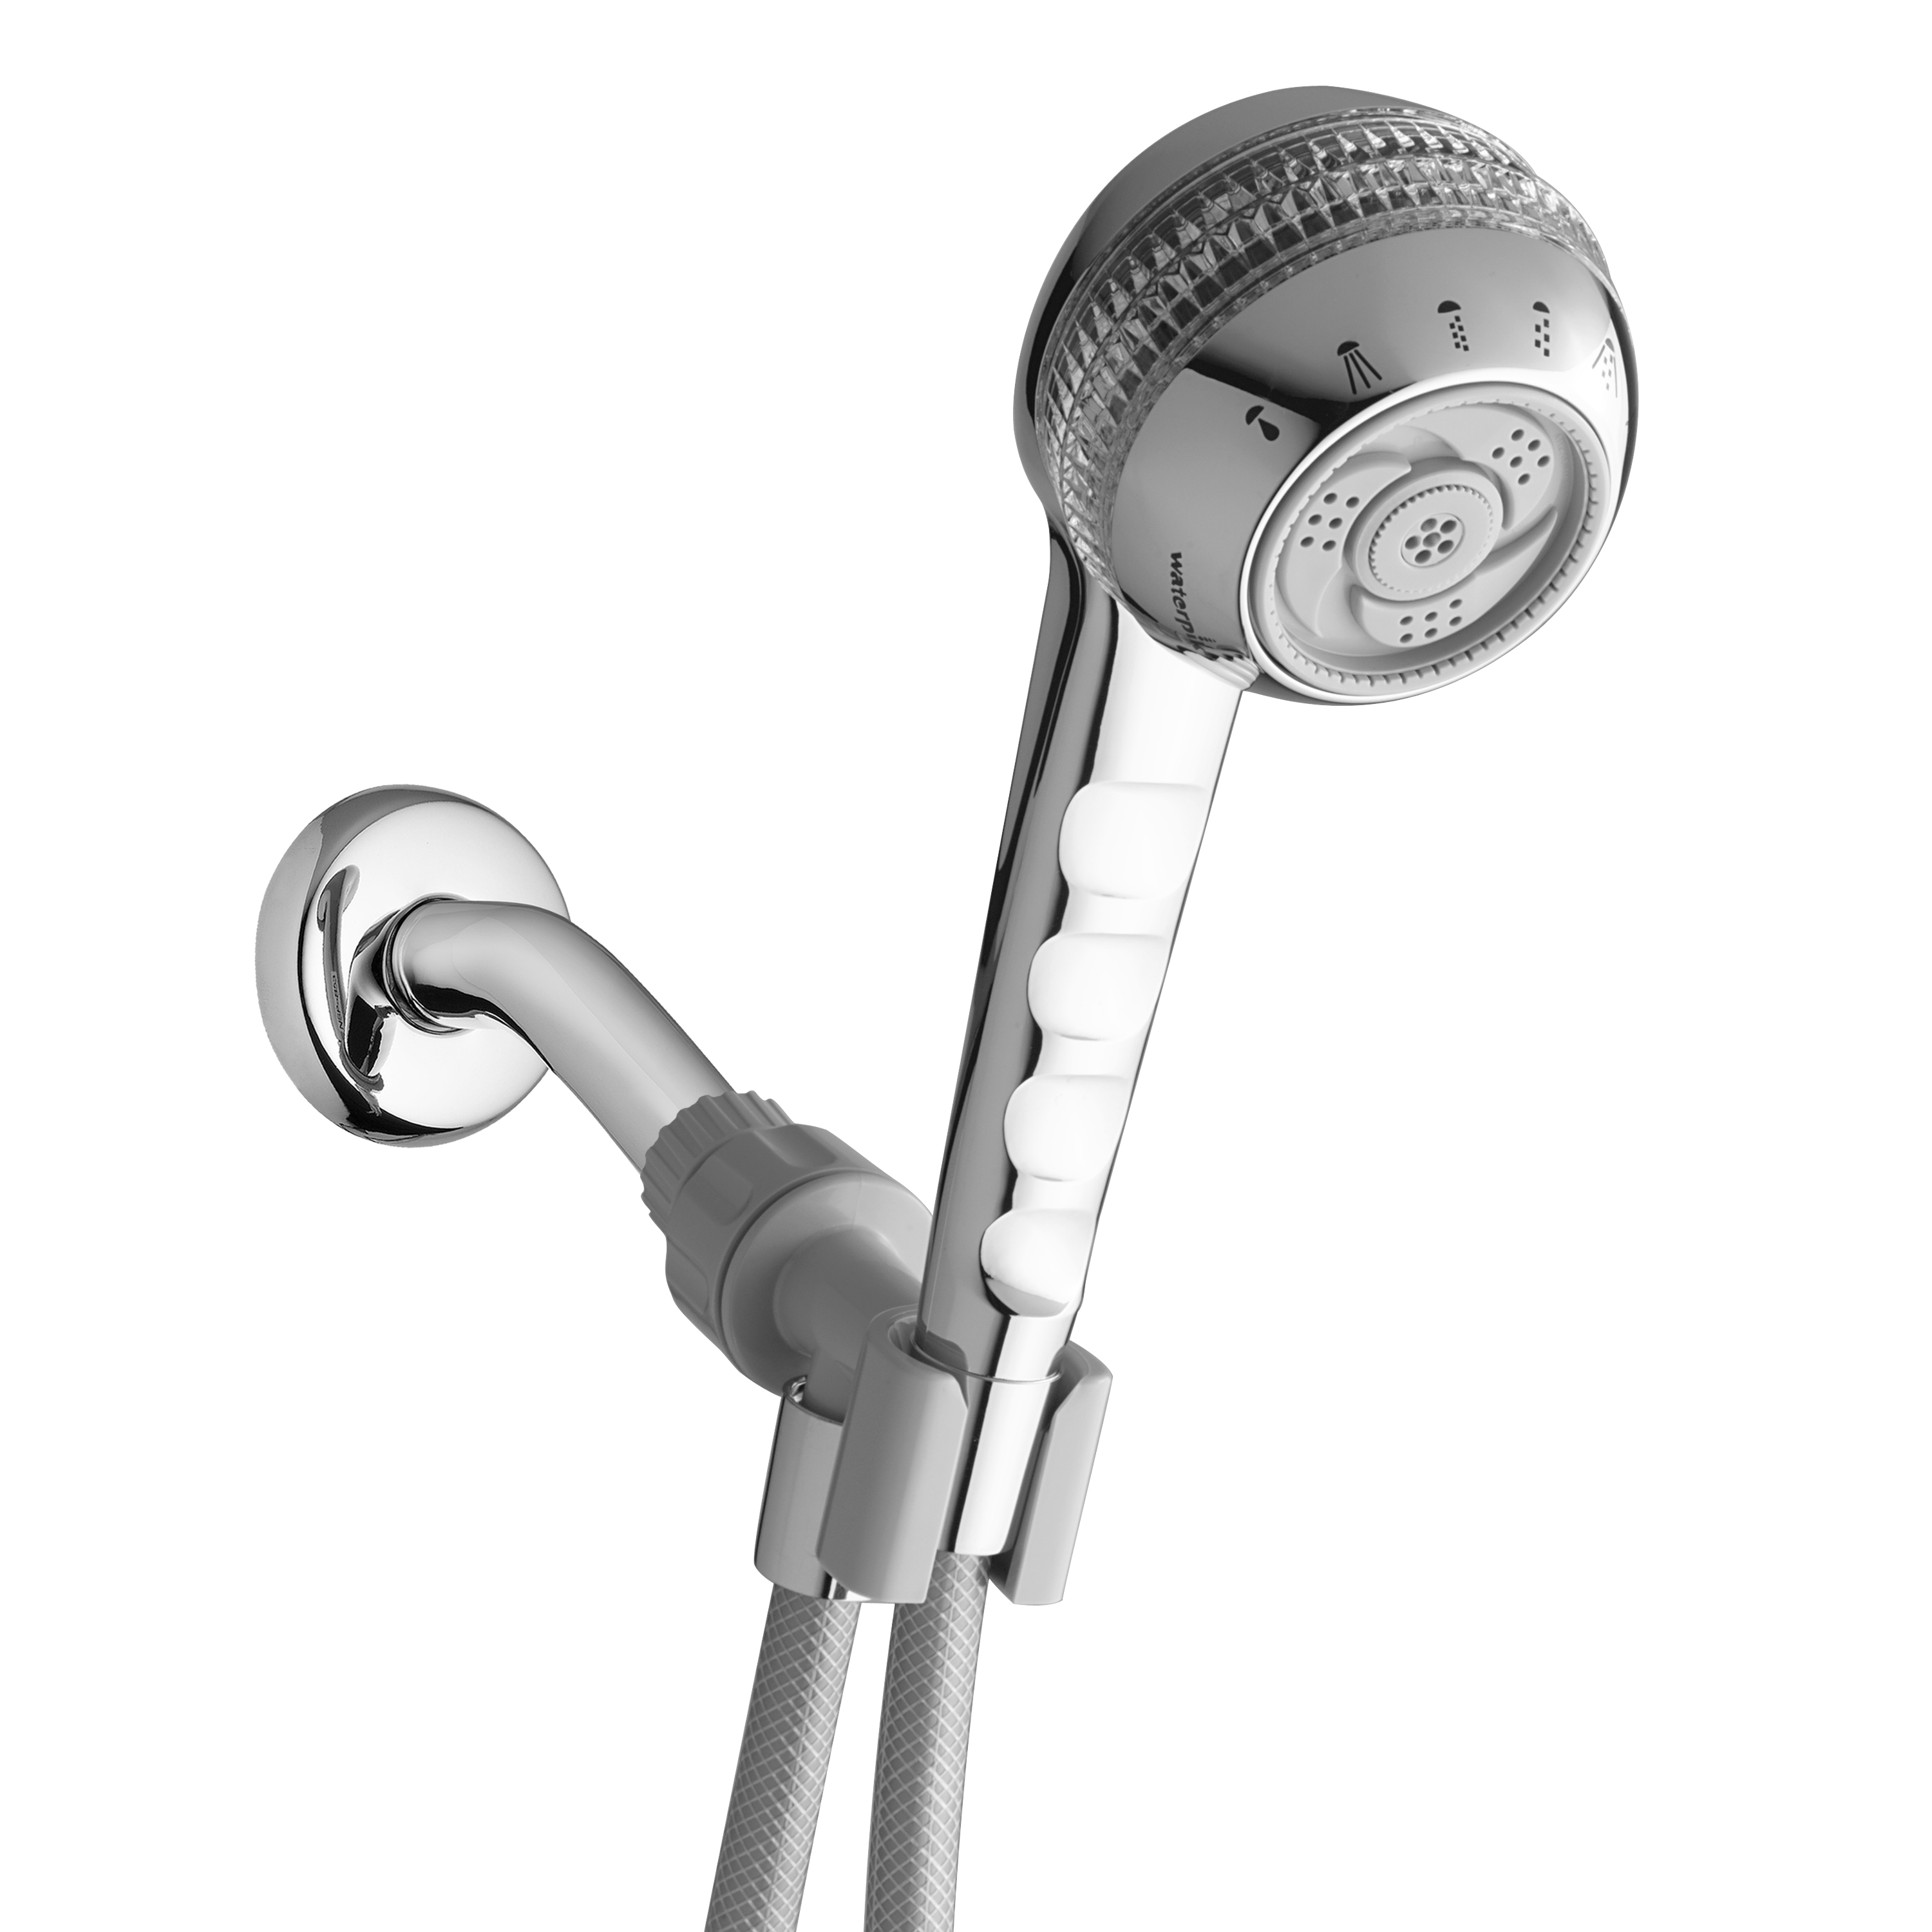 Waterpik 6-Mode PowerSpray+ Original Shower Massage Hand Held Shower Head, Chrome SM-653CG